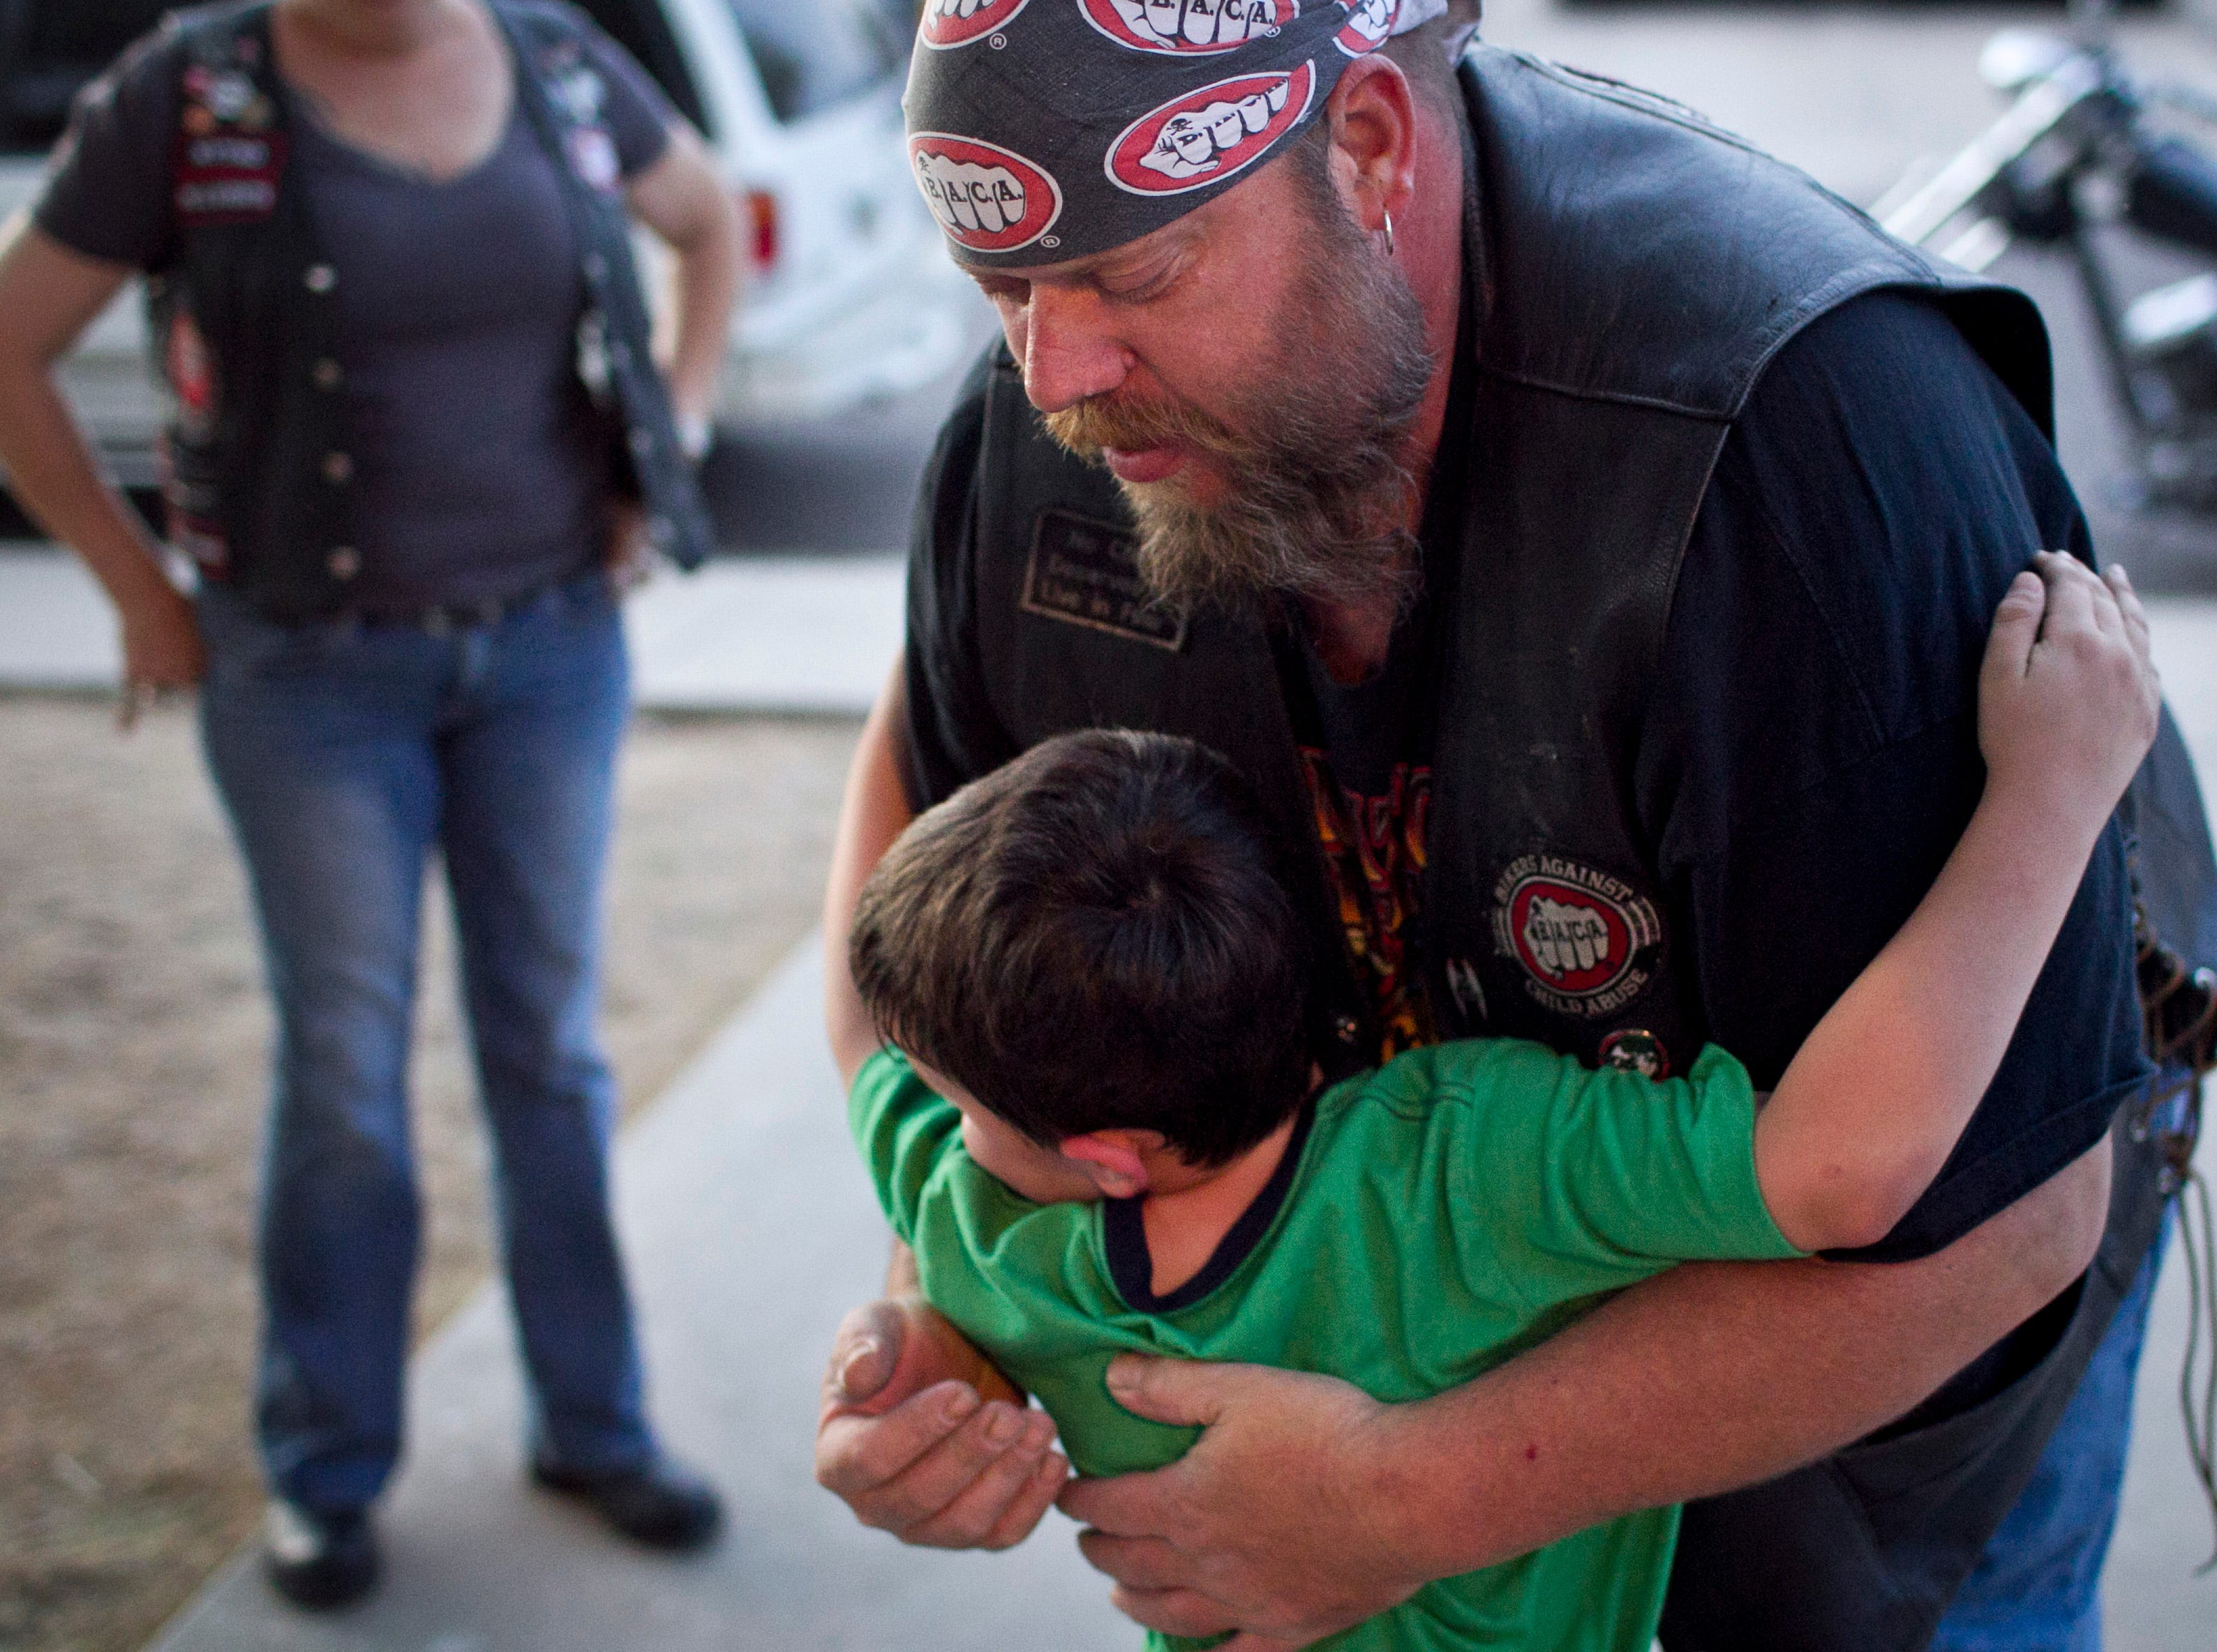 Fast Track give Rock from Bikers Against Child Abuse a hug during a visit.